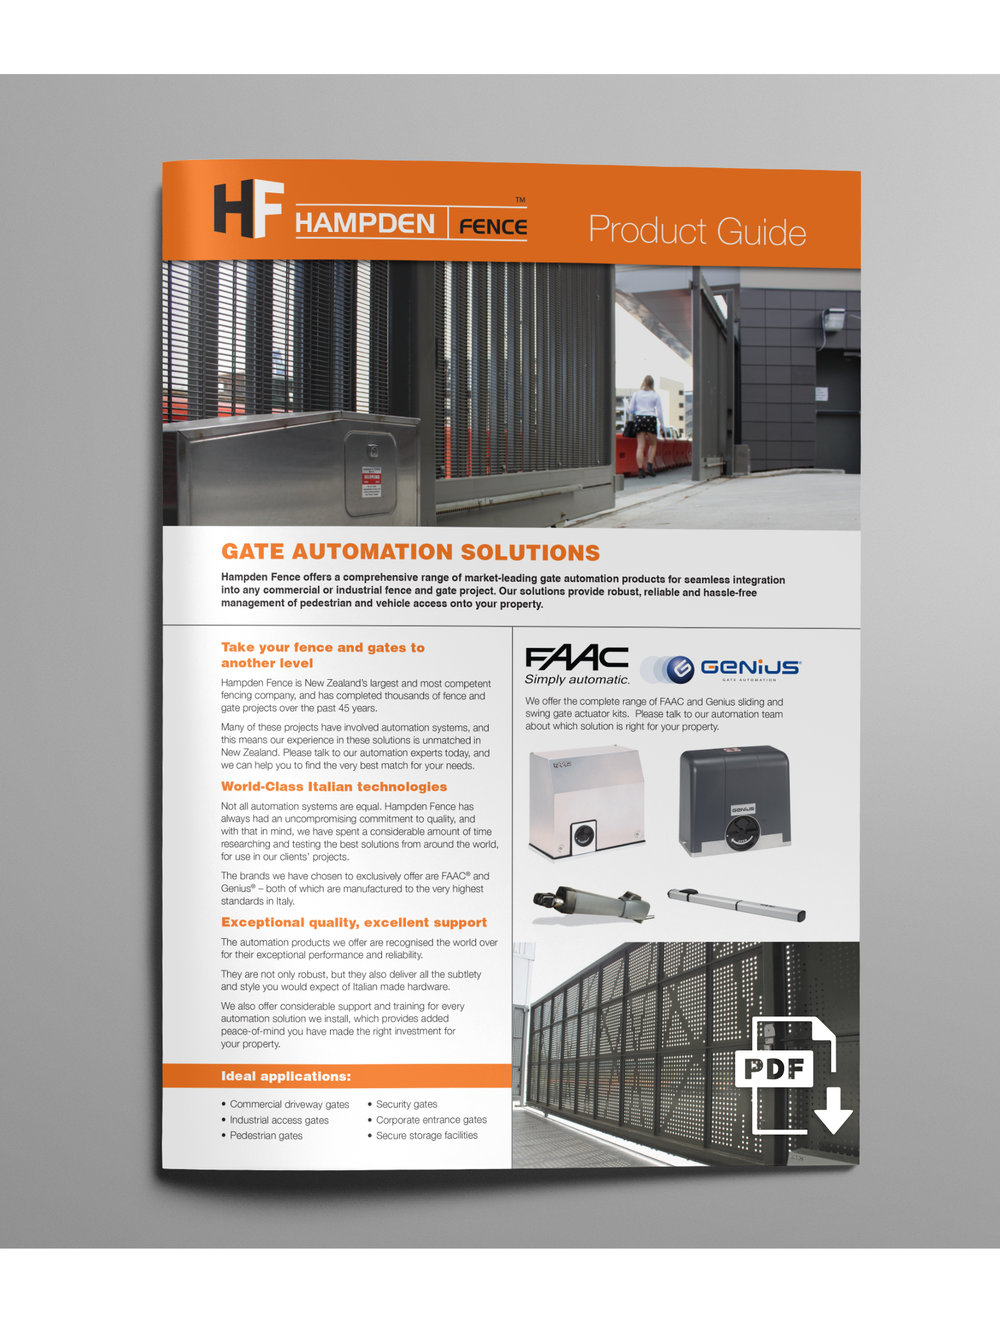 GATE AUTOMATION SOLUTIONS